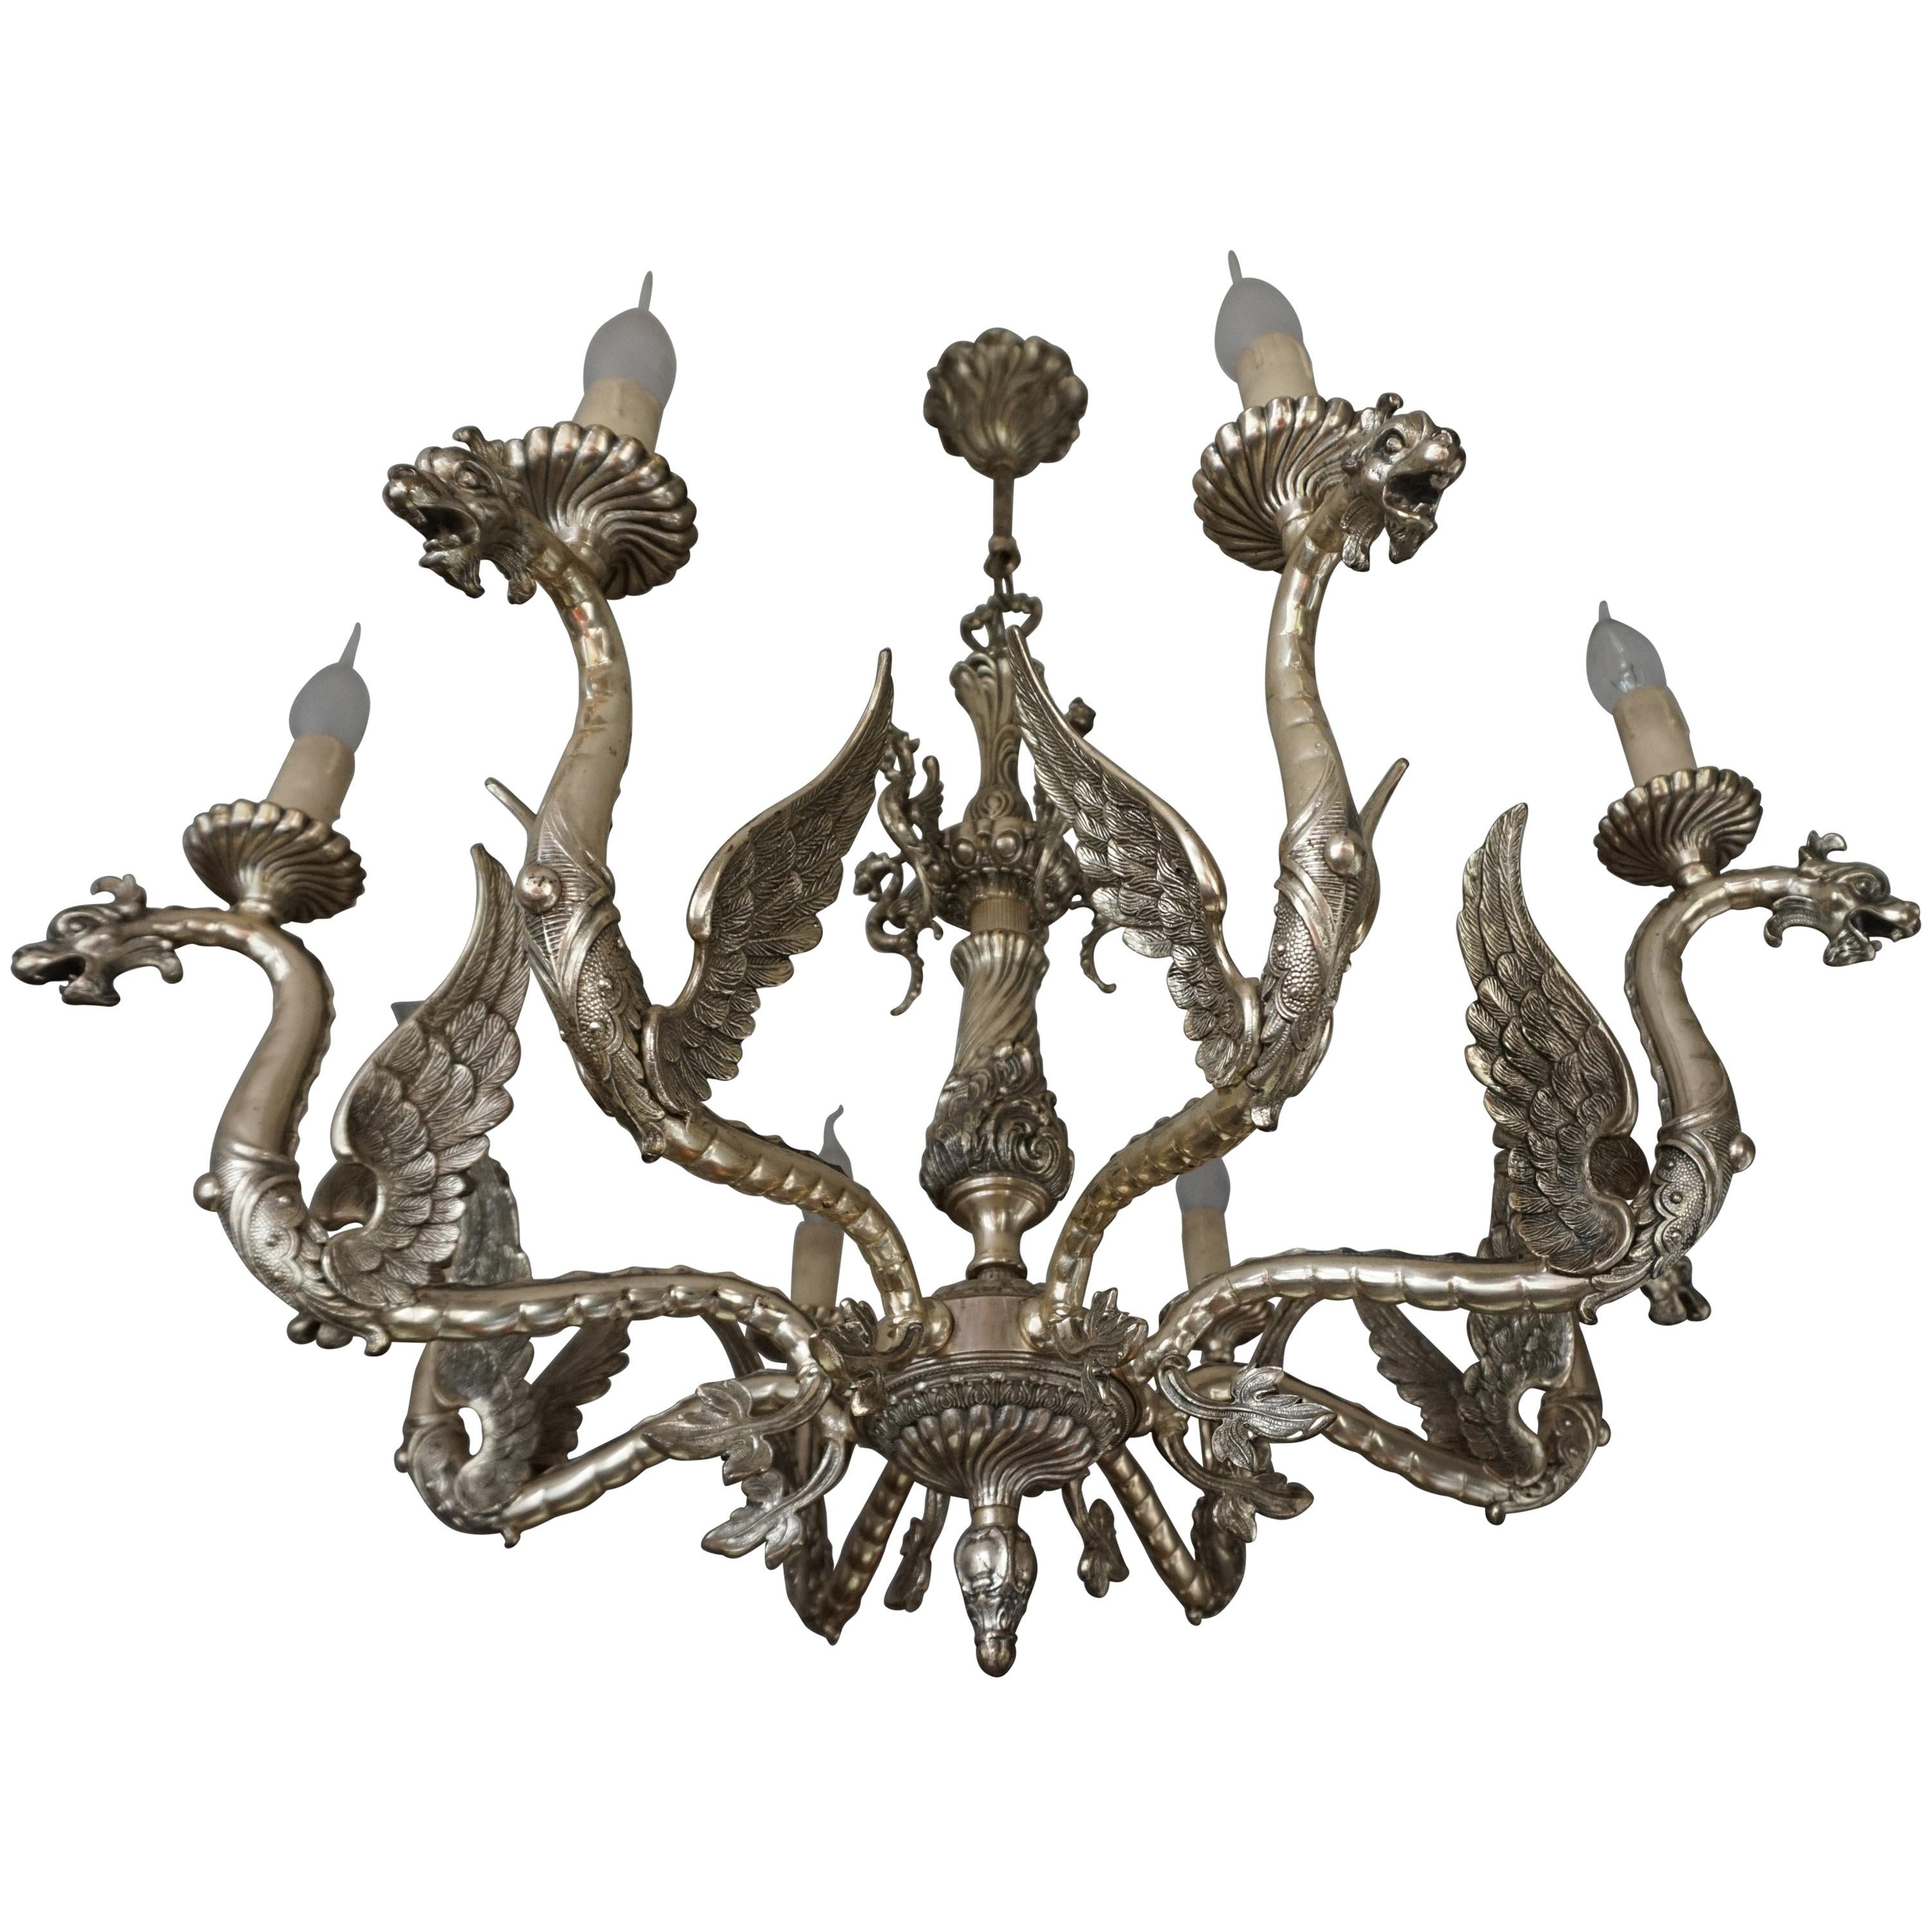 Amazing Gothic Revival Silvered Bronze Chandelier with Flying Dragon Sculptures